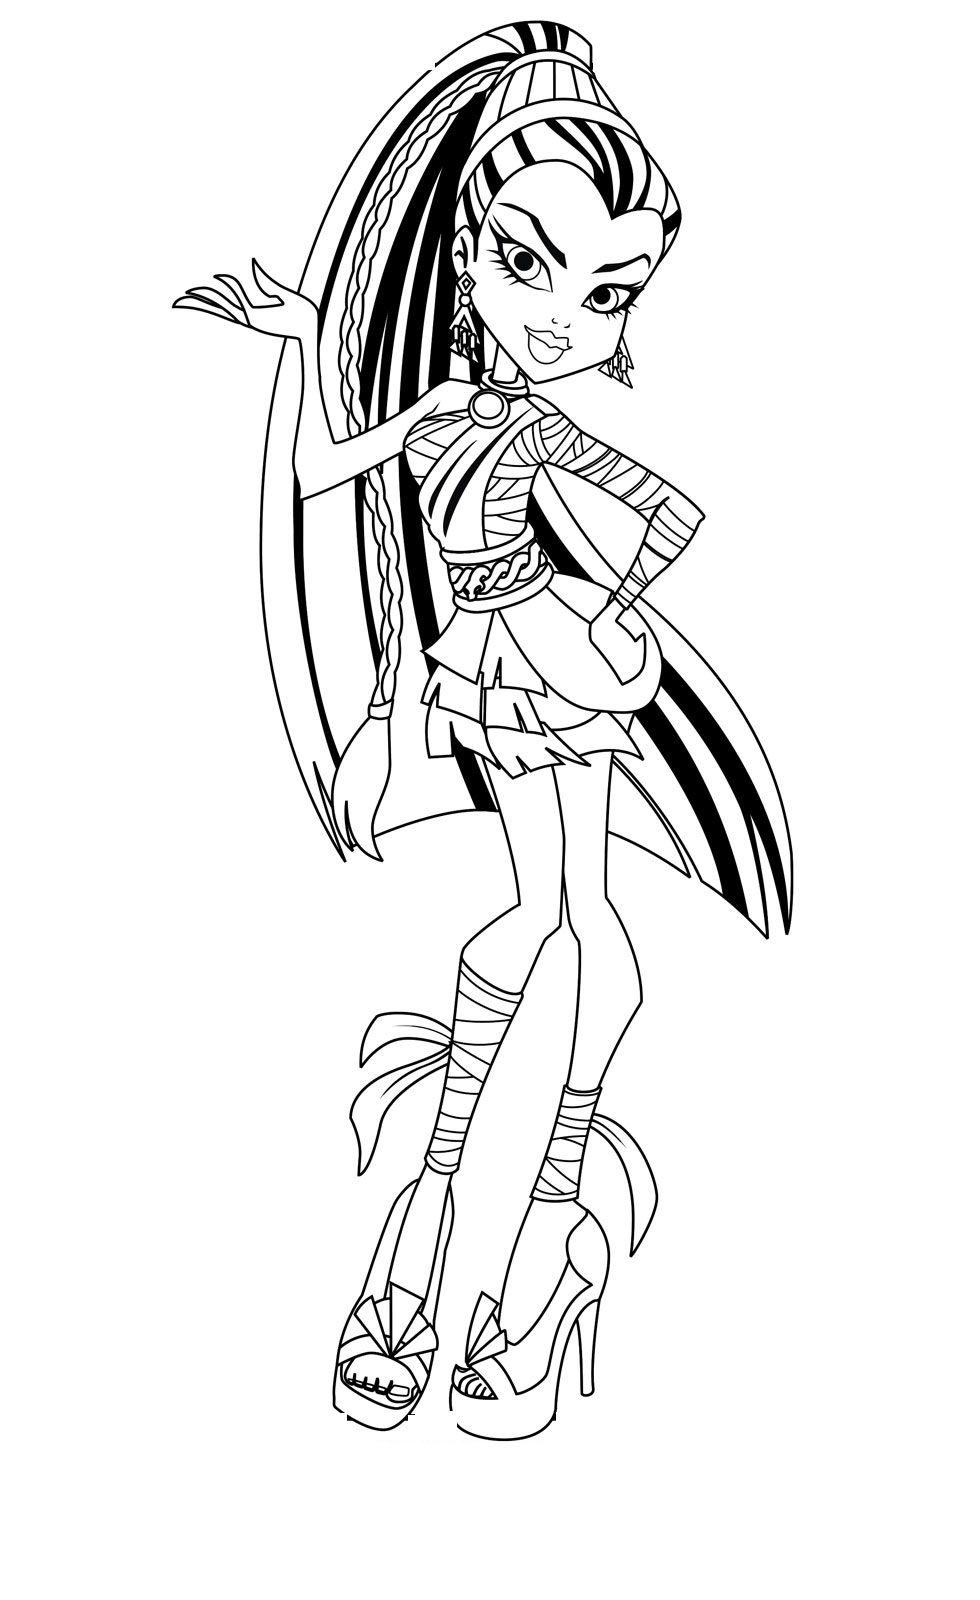 free printable monster high coloring pages for kids - Monster High Coloring Pages